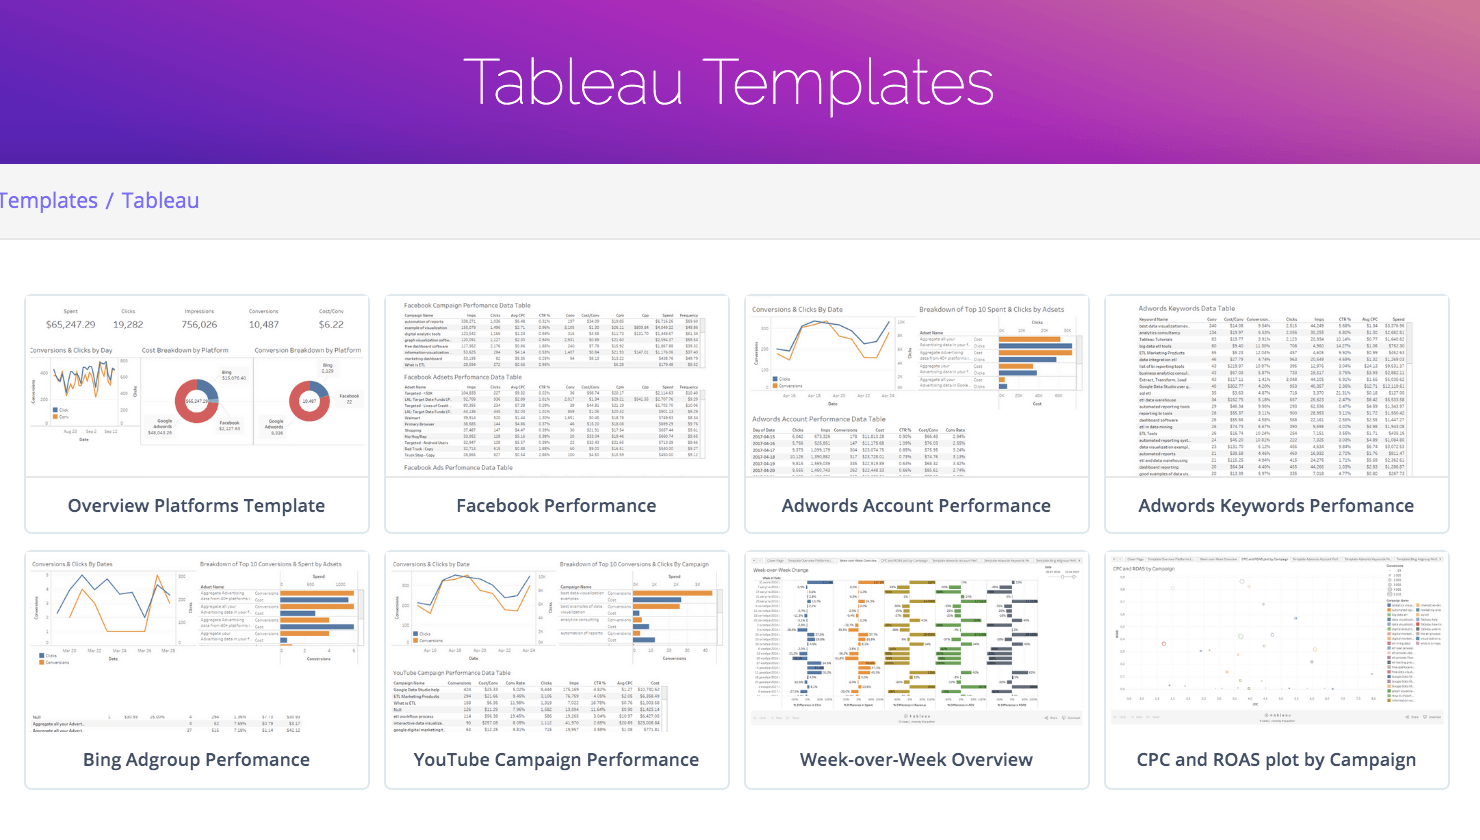 Tableau Templates list